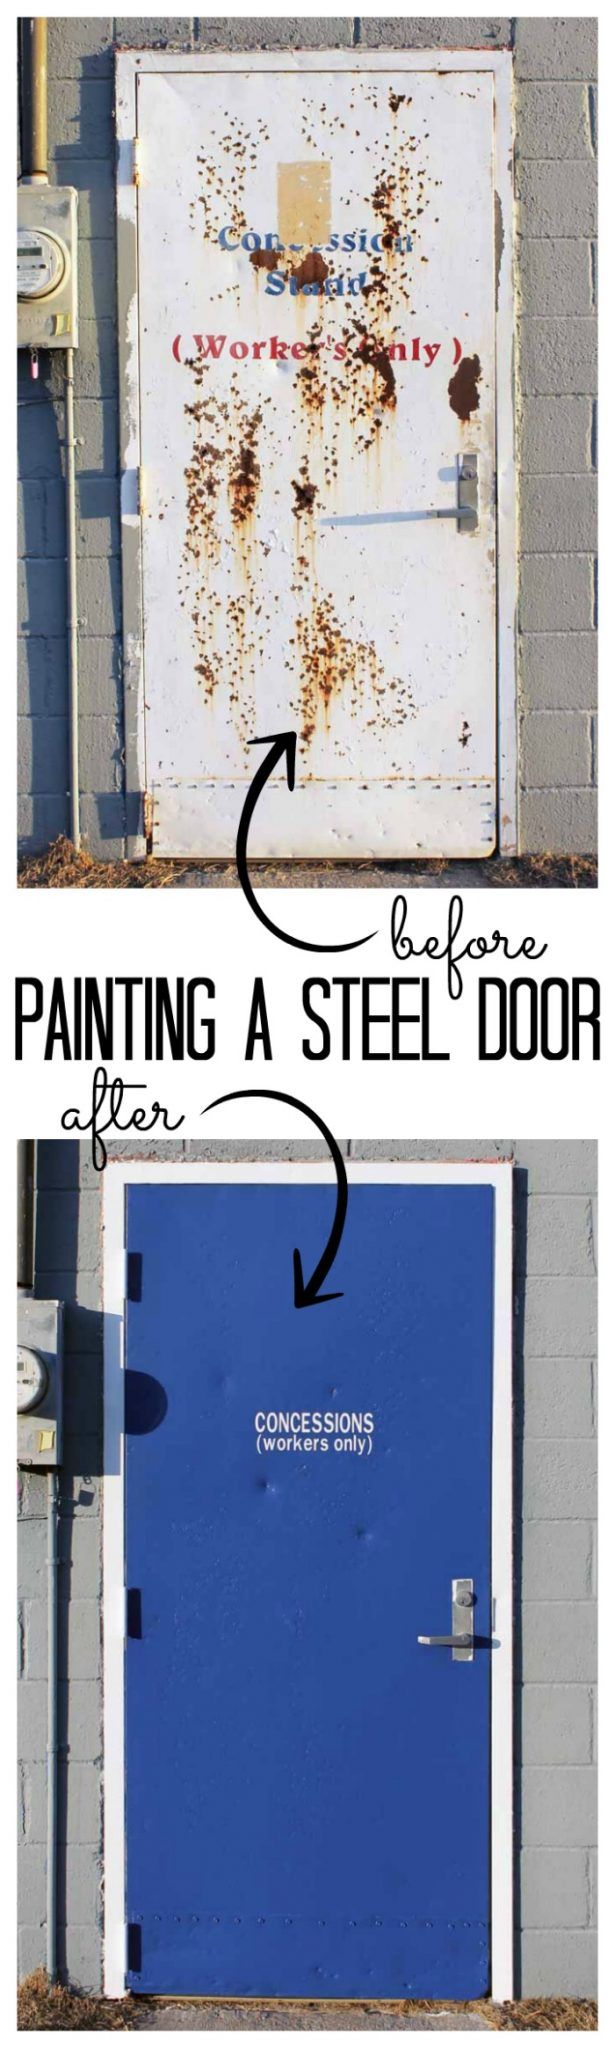 Need help painting a steel door? We have all of the tips and tricks to make your project go smoothly!